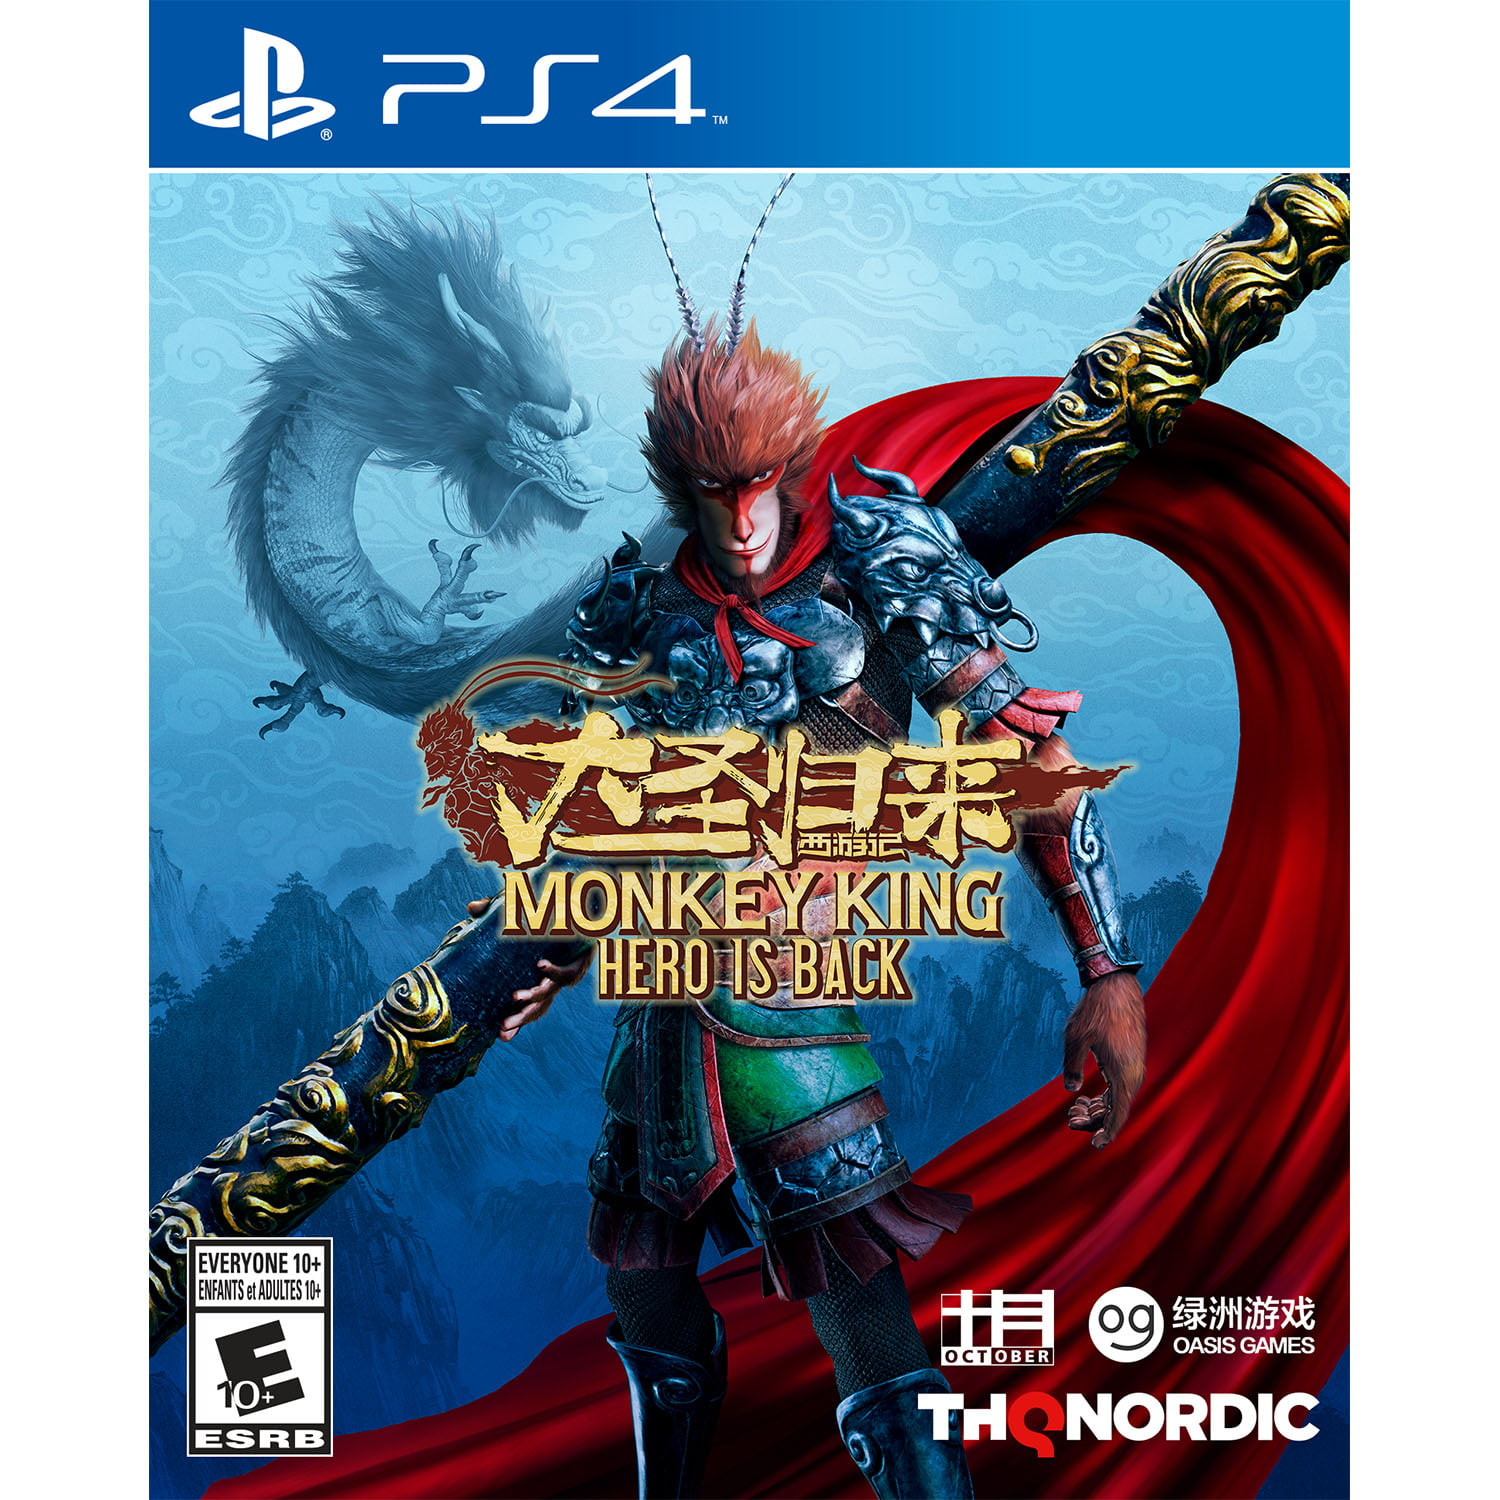 Monkey King: Hero Is Back, THQ-Nordic, PlayStation 4, 811994022301